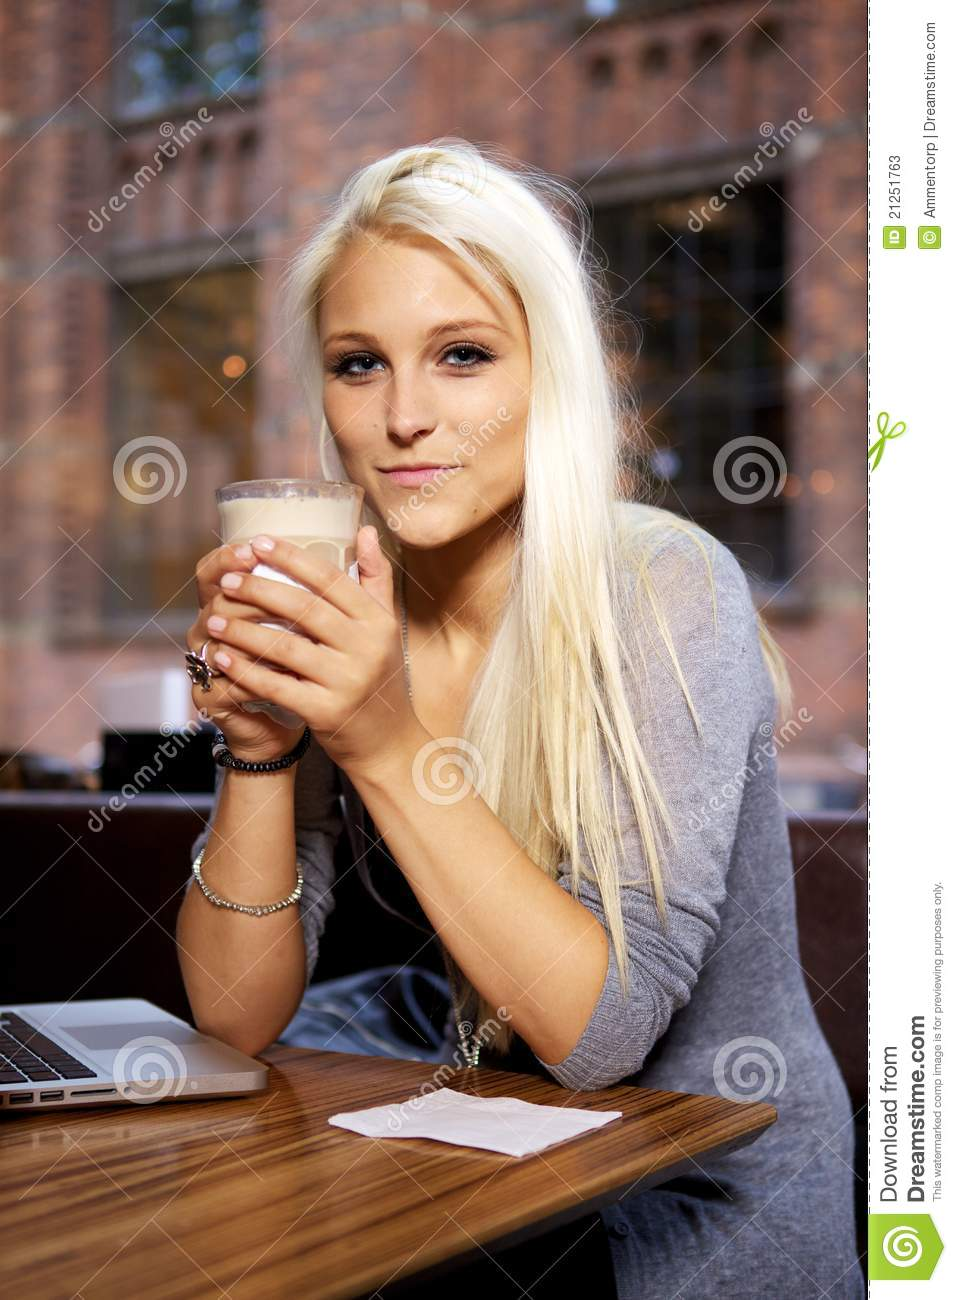 Video Girl Dress: Smiling Girl On Cafe Stock Image. Image Of Computer